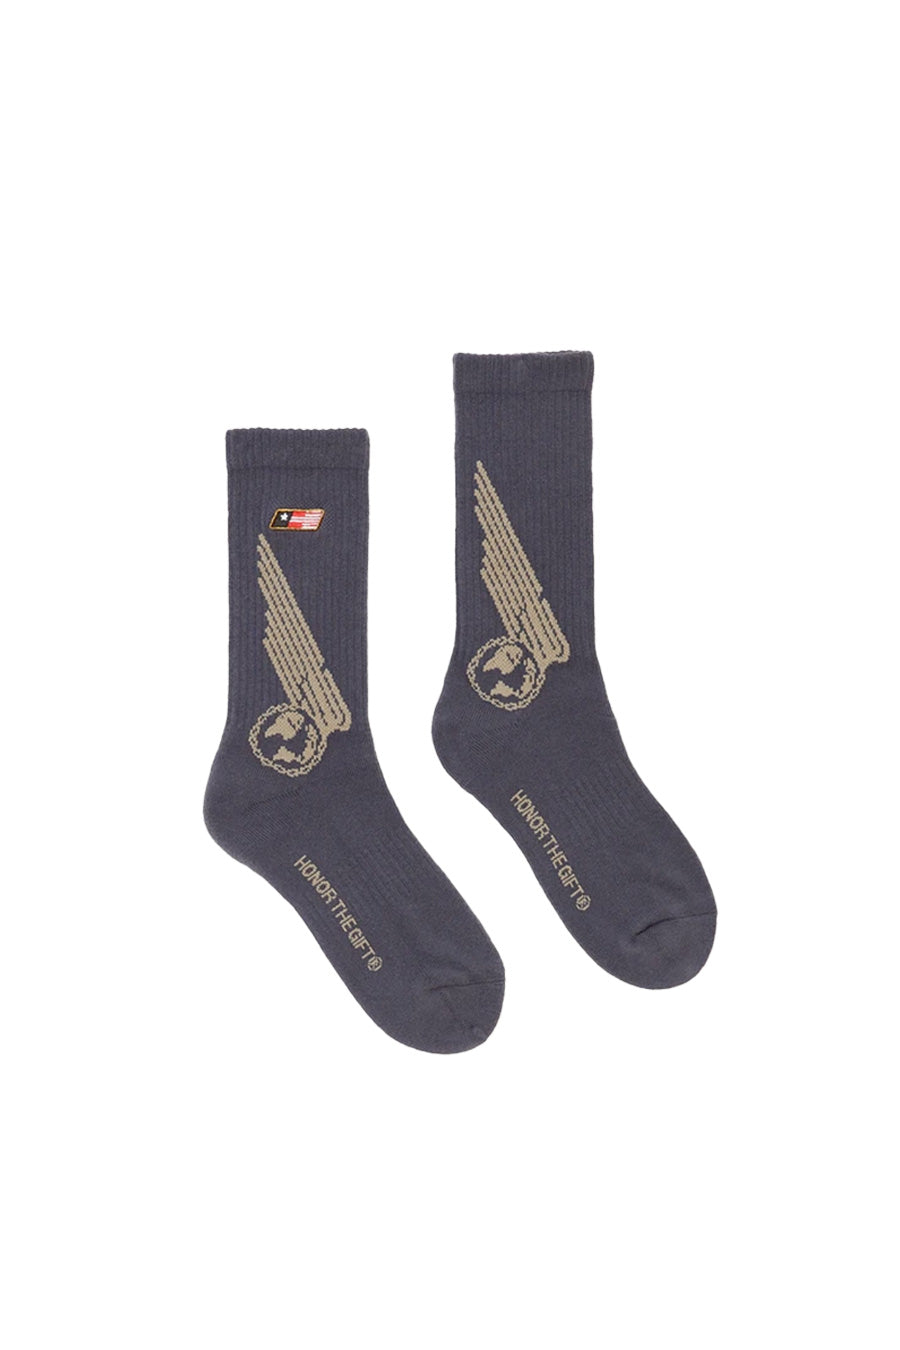 Honor the Gift - Navy Airborne Socks | 1032 SPACE